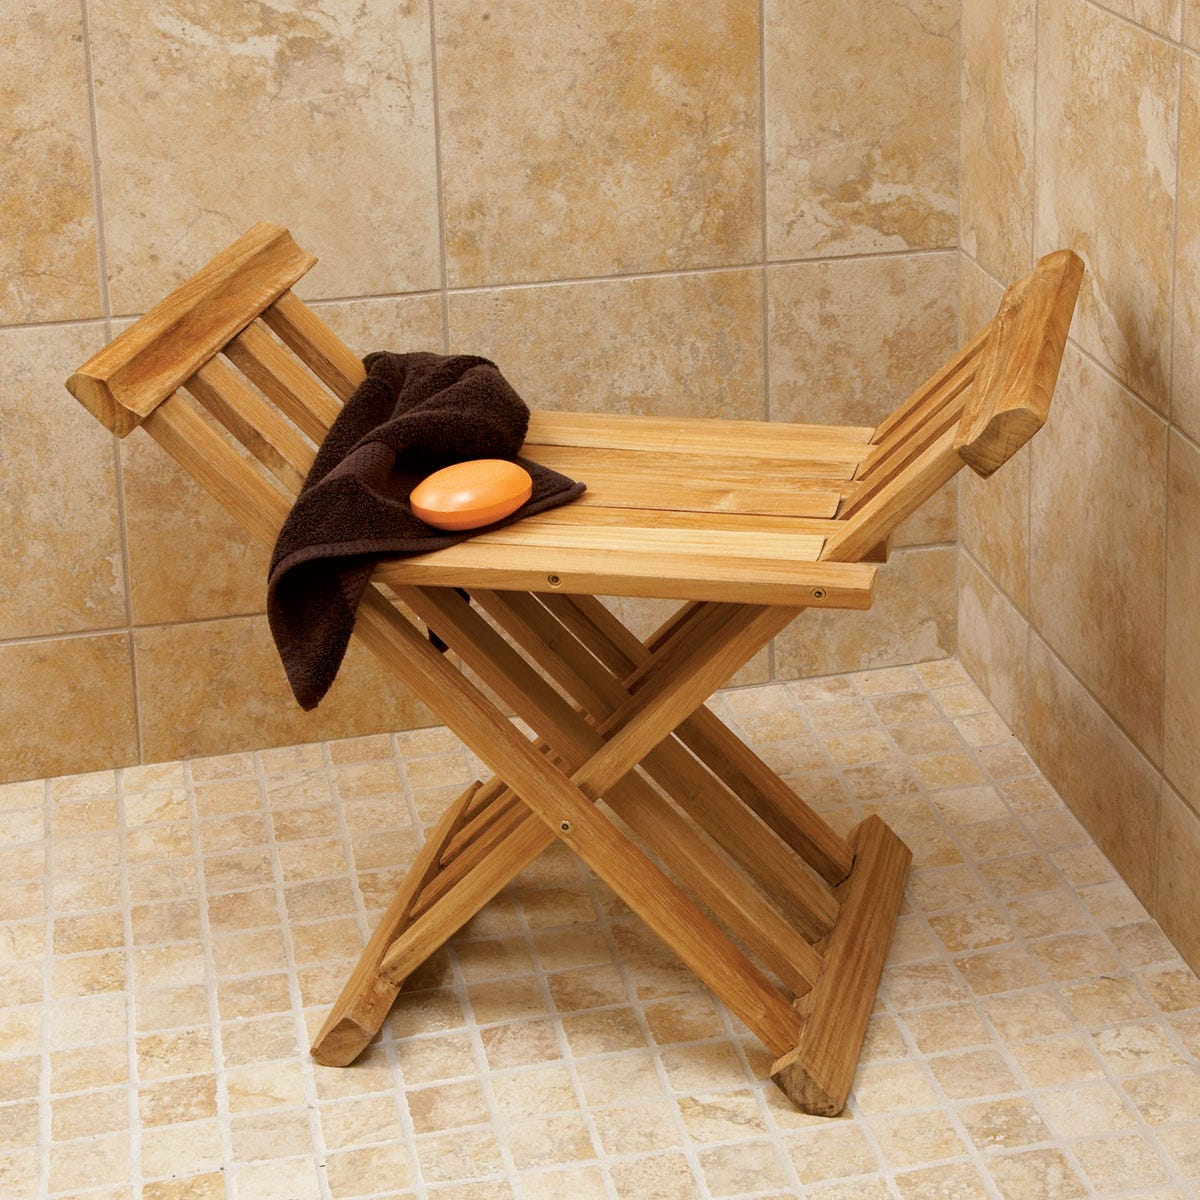 Teak And More teak shower bench care teak shower bench design large teak rectangular shower stool shower